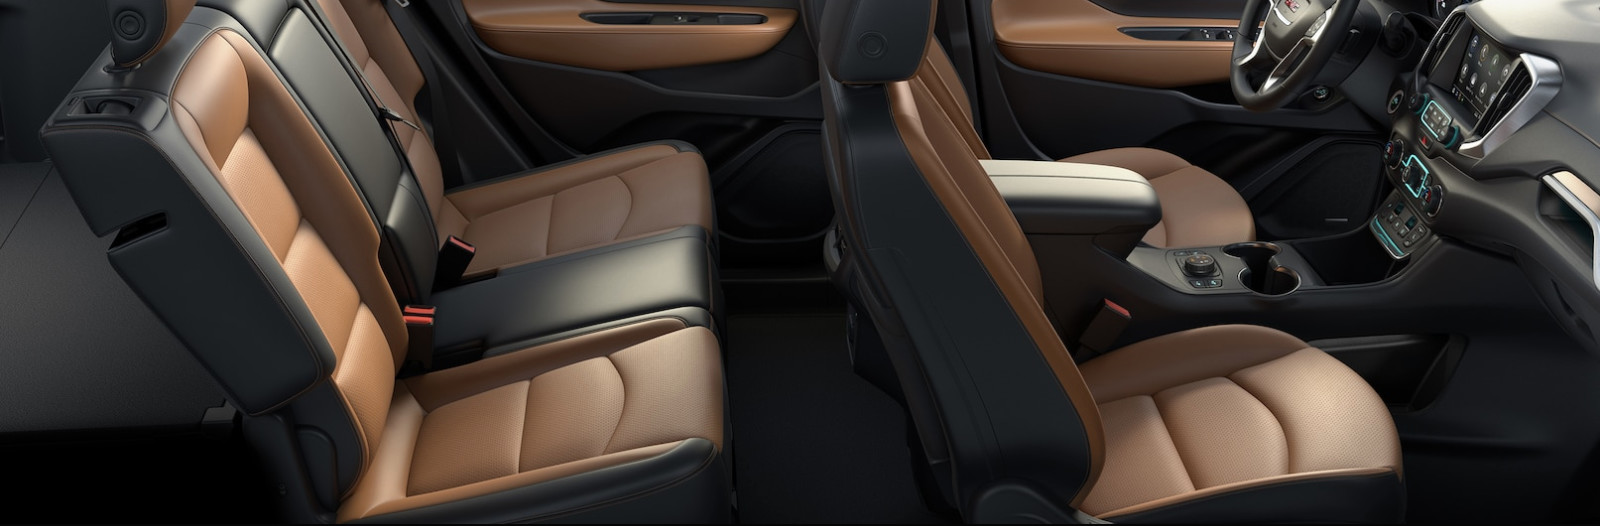 Interior of the 2017 GMC Terrain